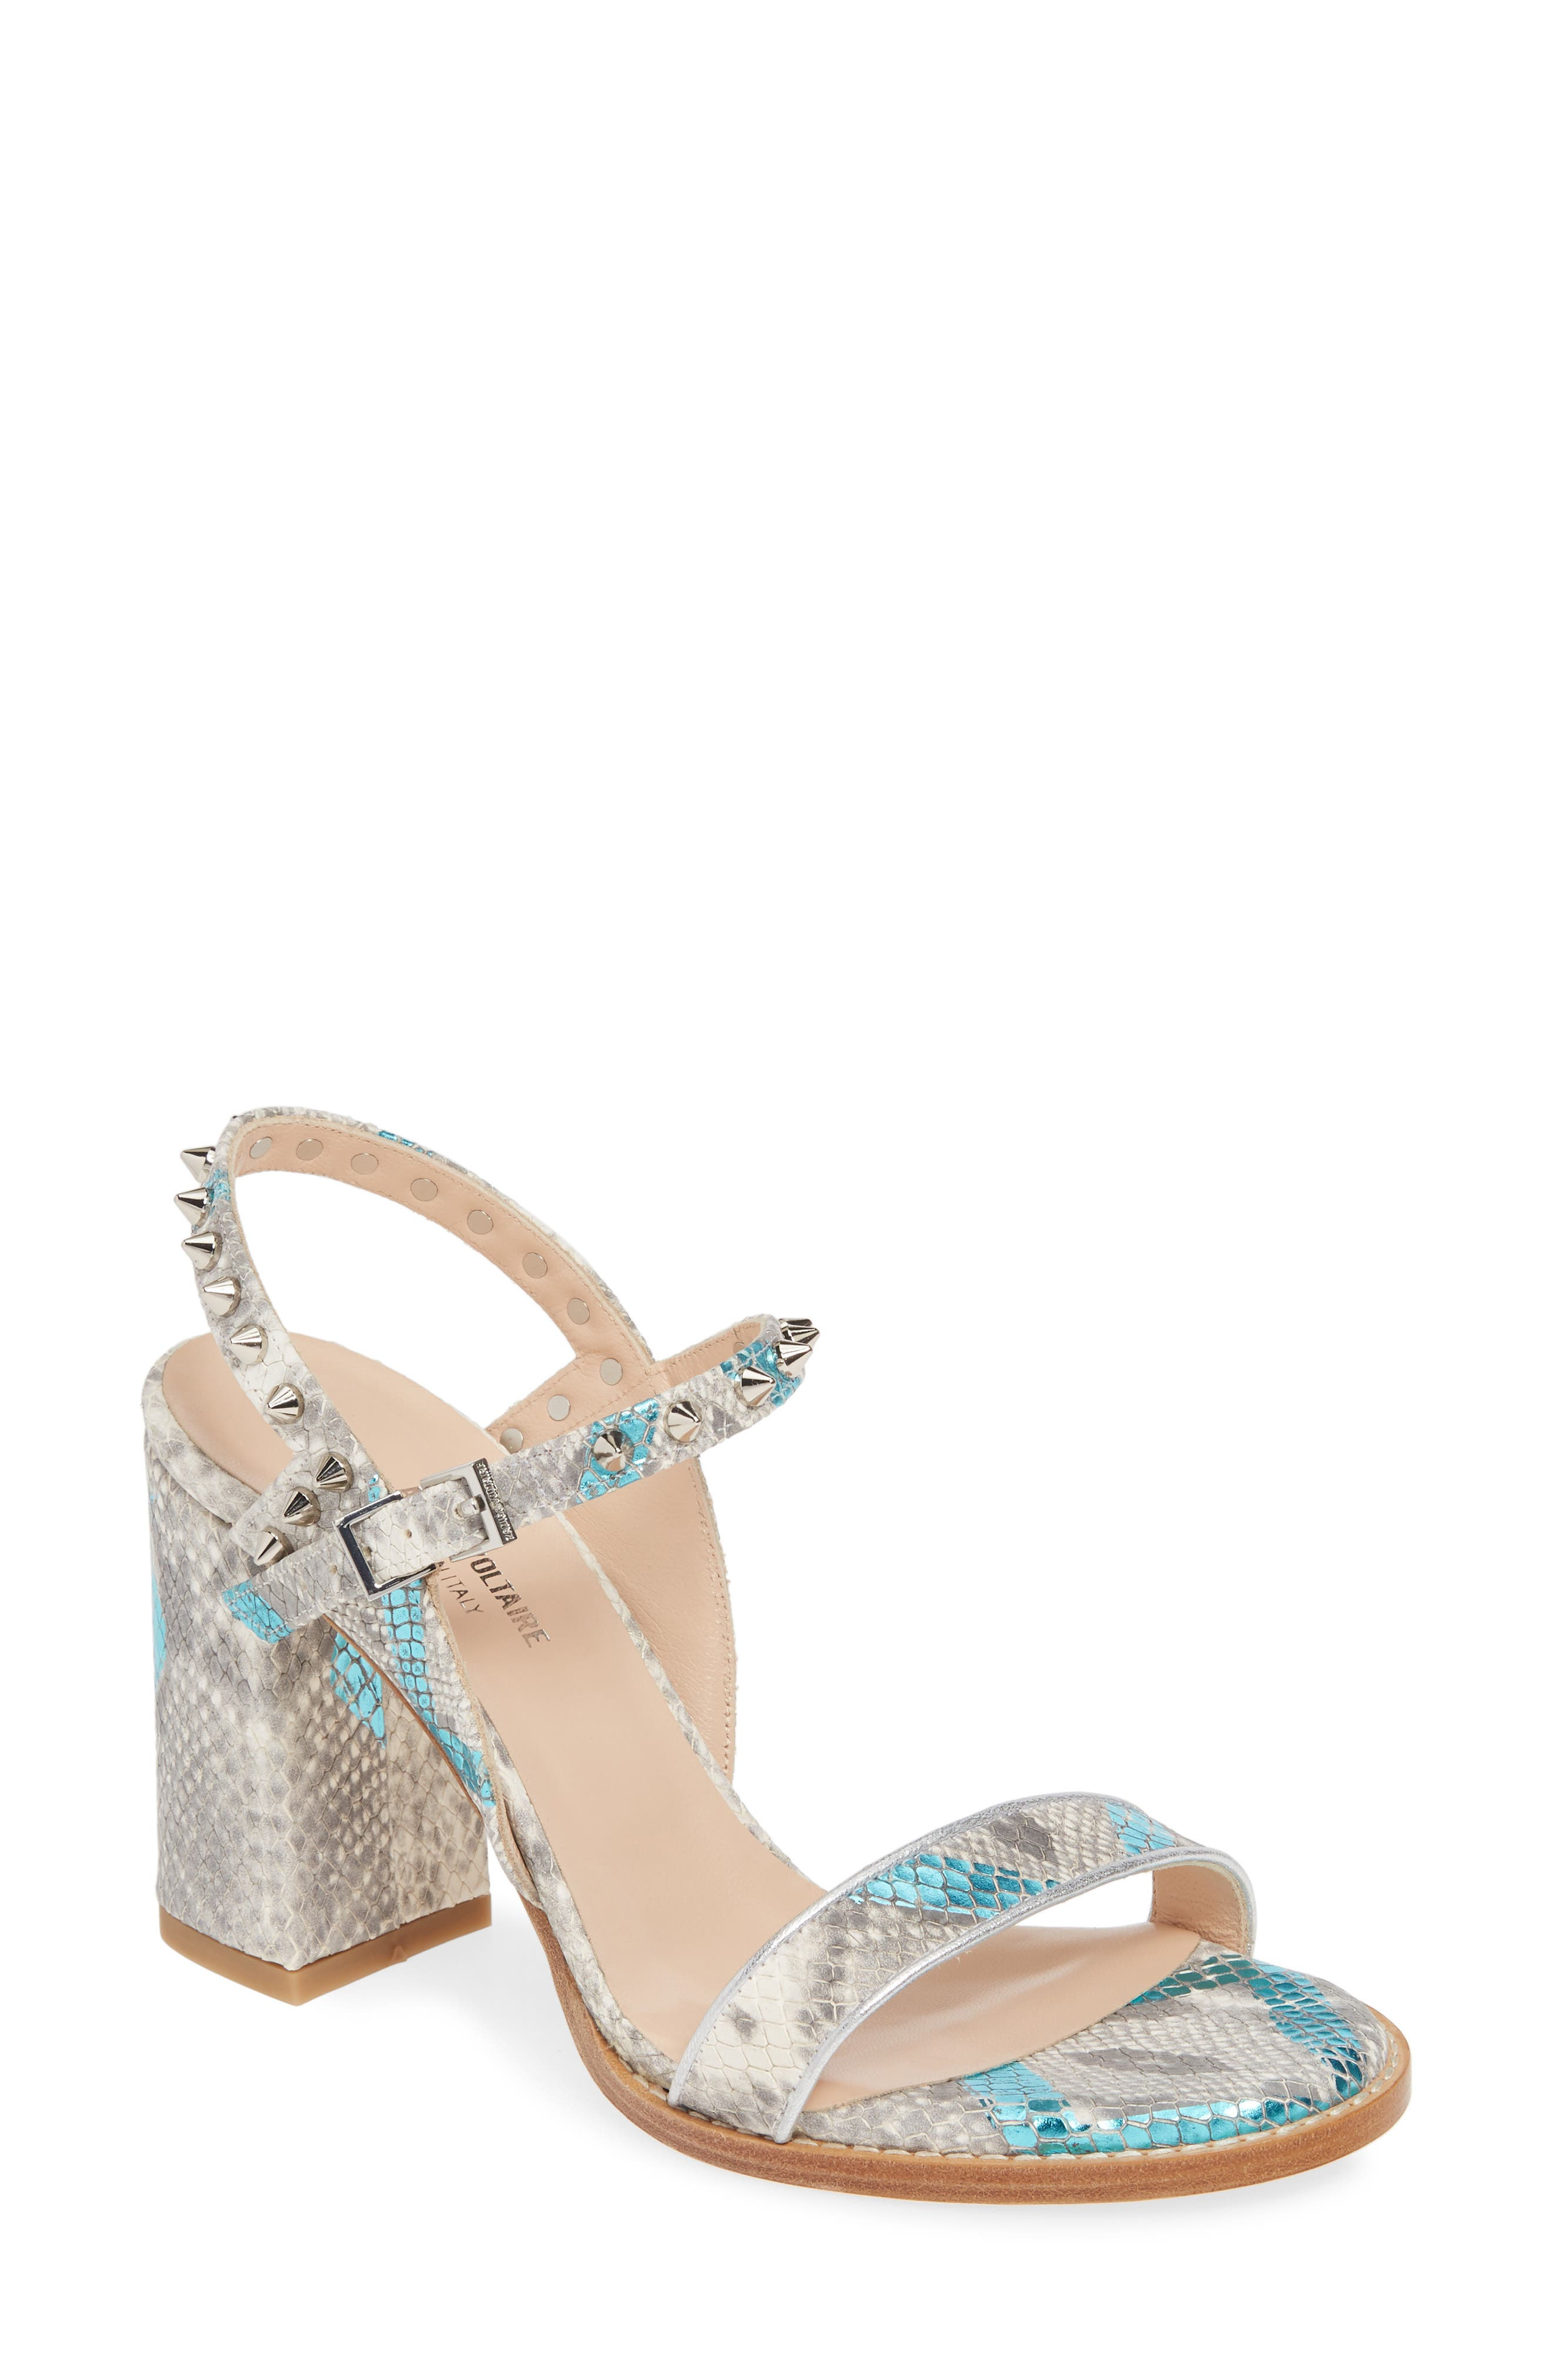 Bouge Snake Embossed Spiked Sandal by Zadig &Amp; Voltaire